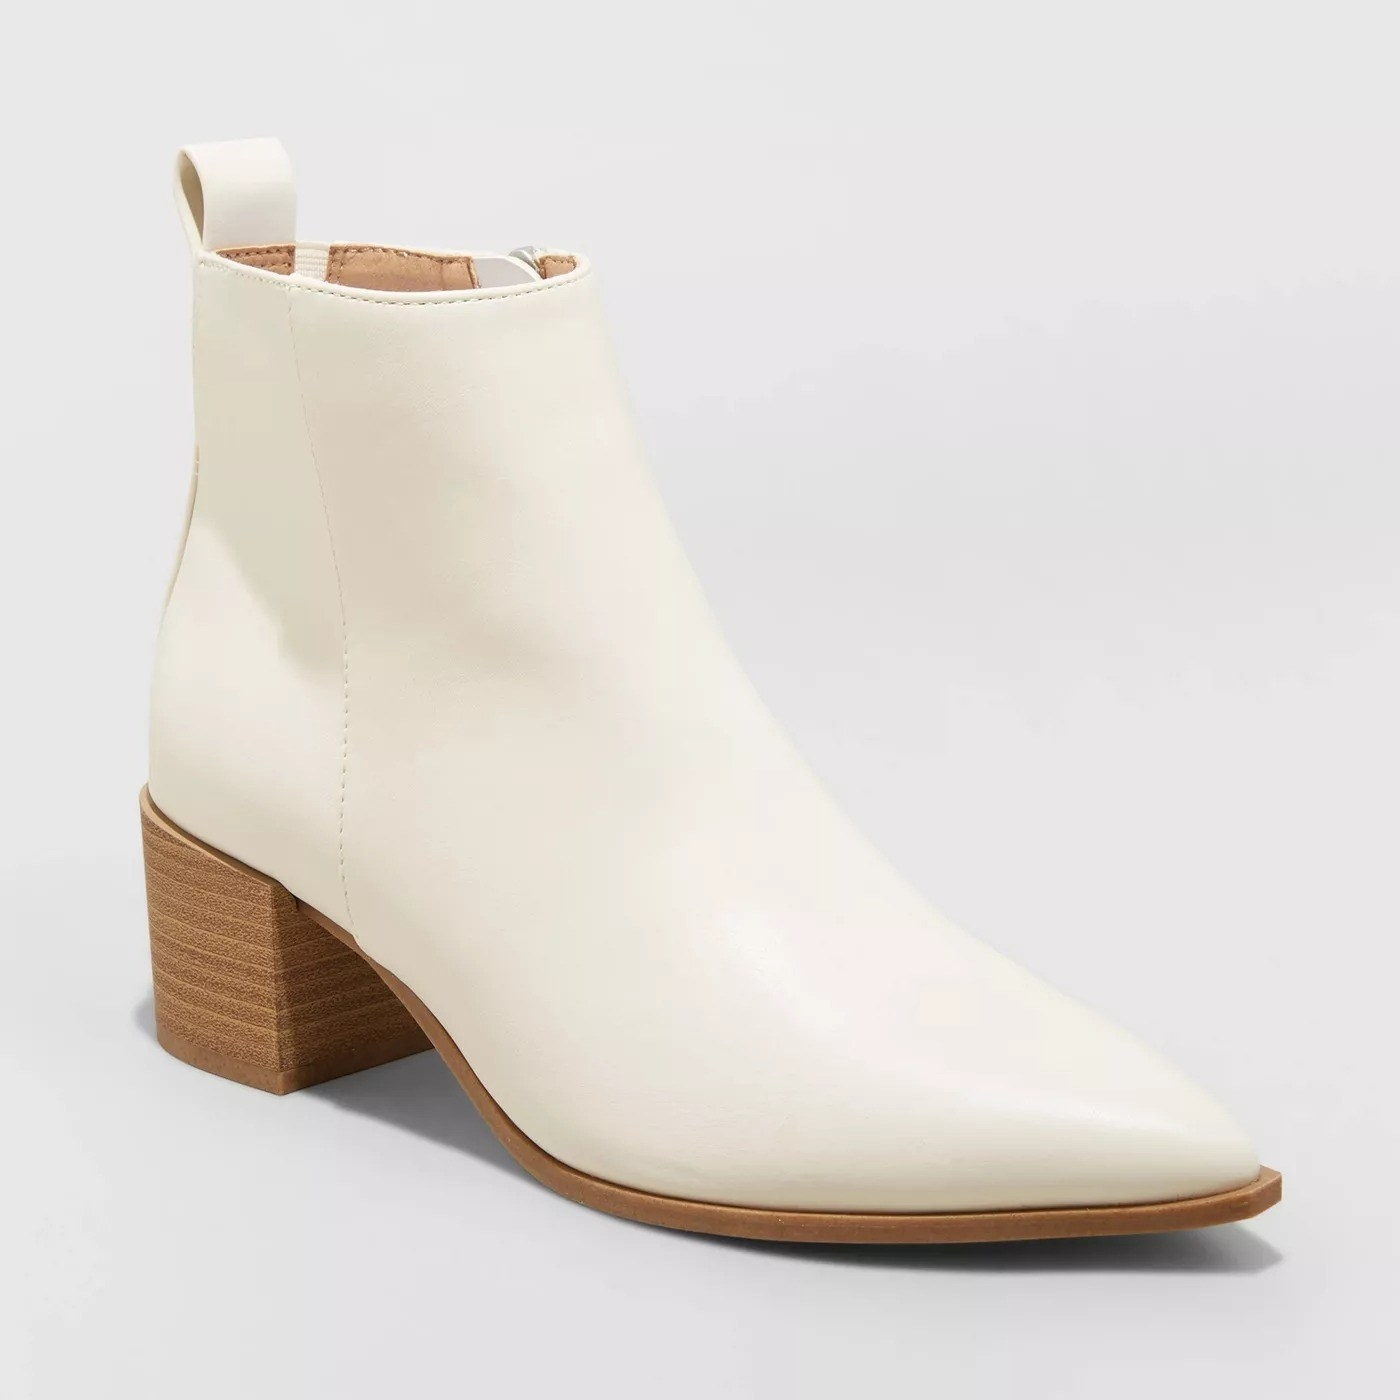 White leather booties with pointed toe, light brown wooden sole